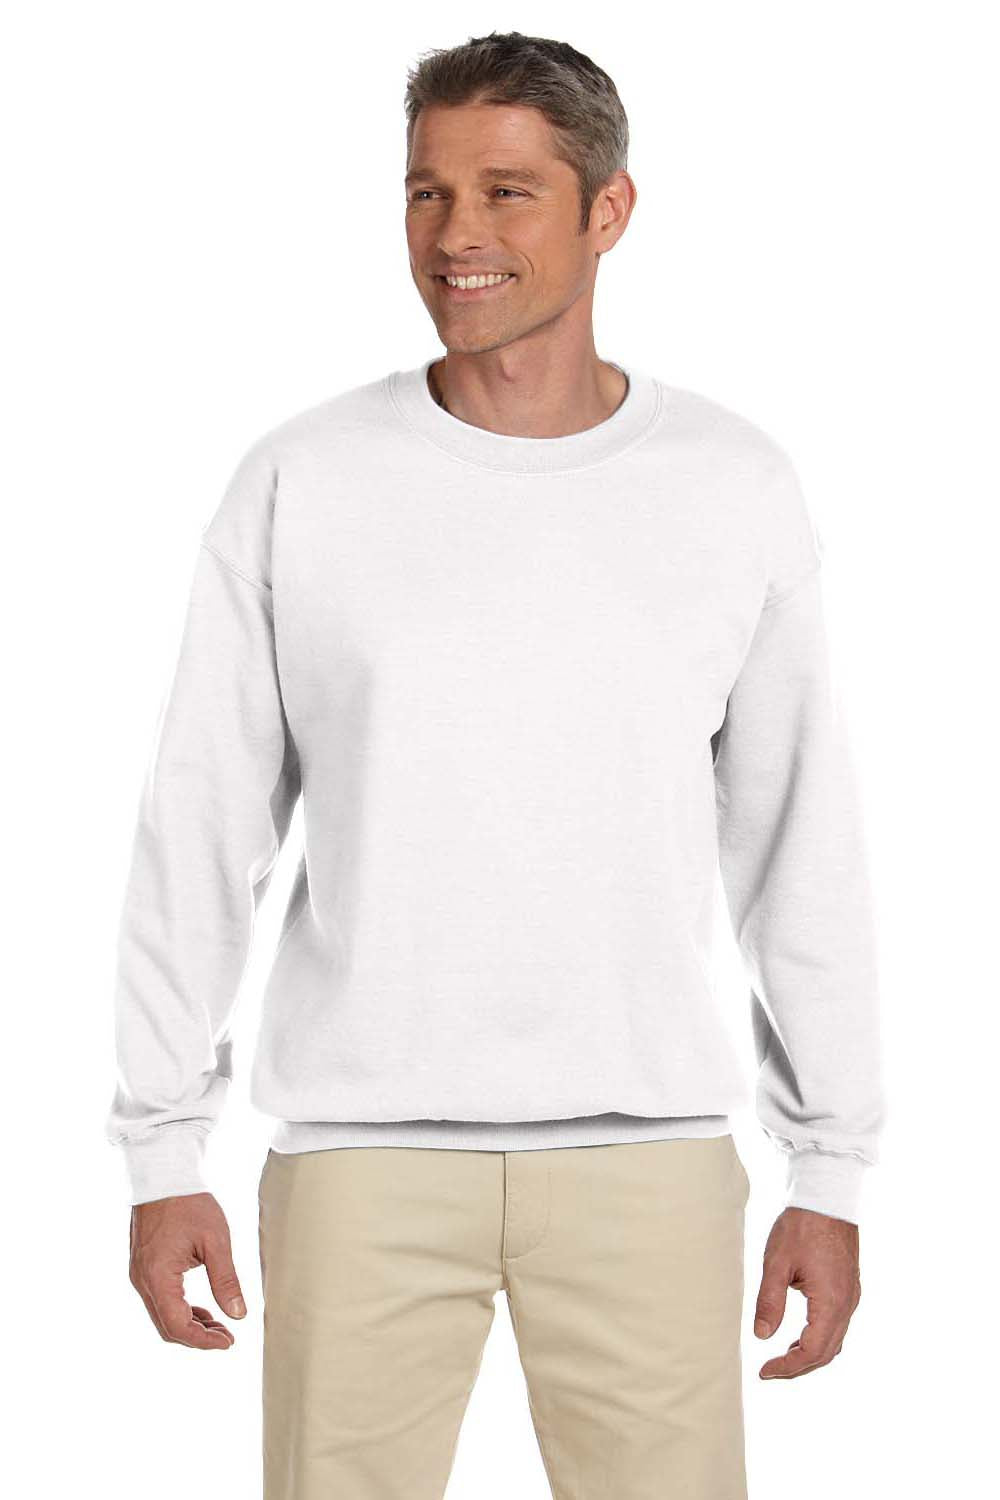 Hanes F260 Mens Ultimate Cotton PrintPro XP Crewneck Sweatshirt White Front